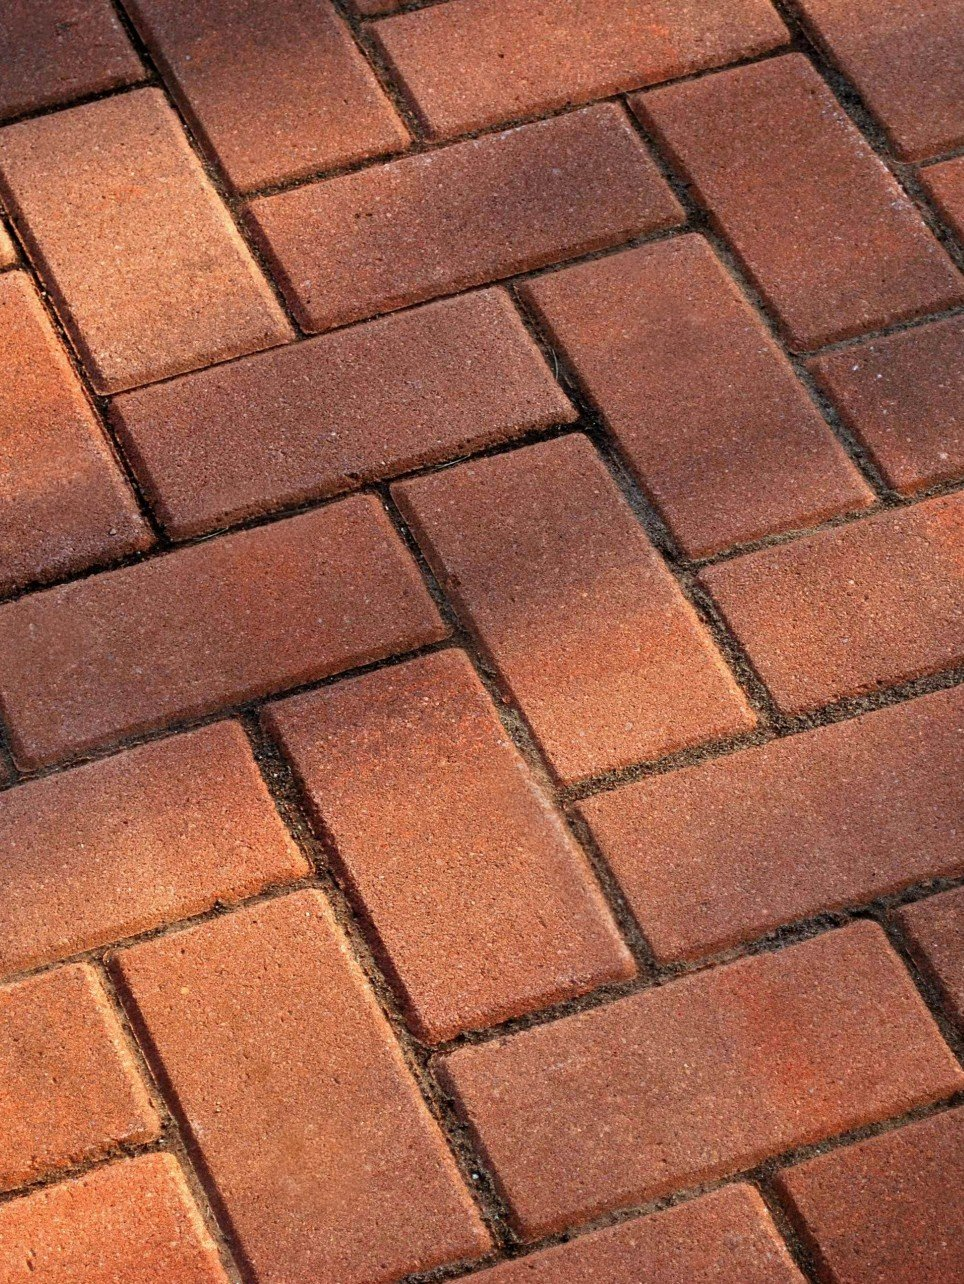 Block Paving Companies Walmley